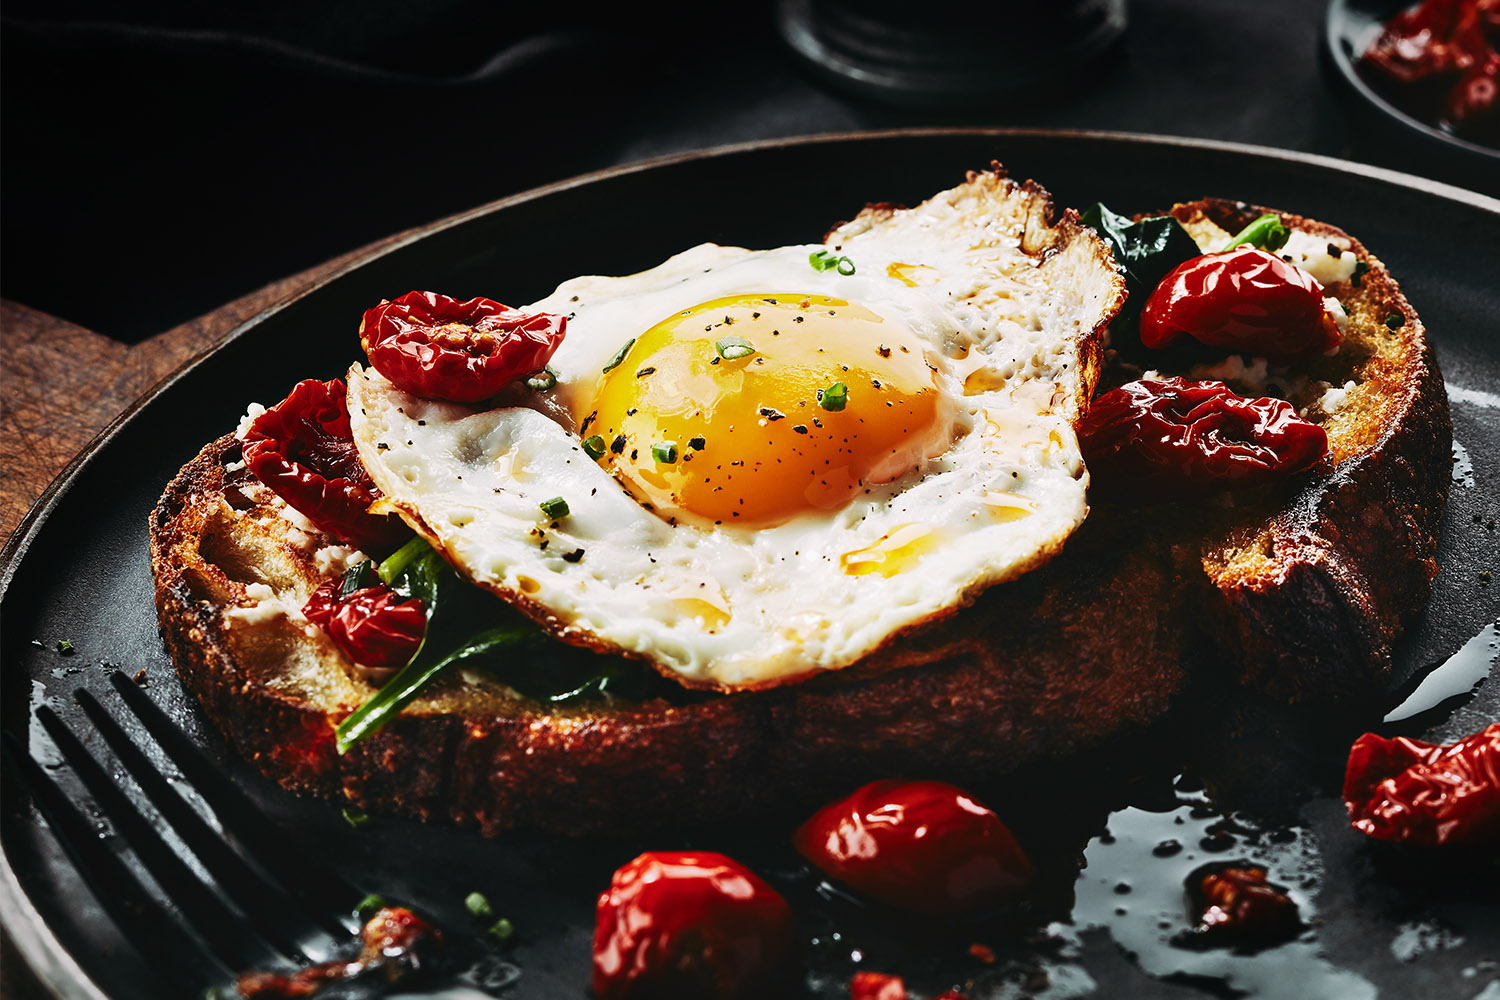 pcbl_groc_fried_egg_roasted_tomato_tartines_r_Alt_RS_8288 A.jpg